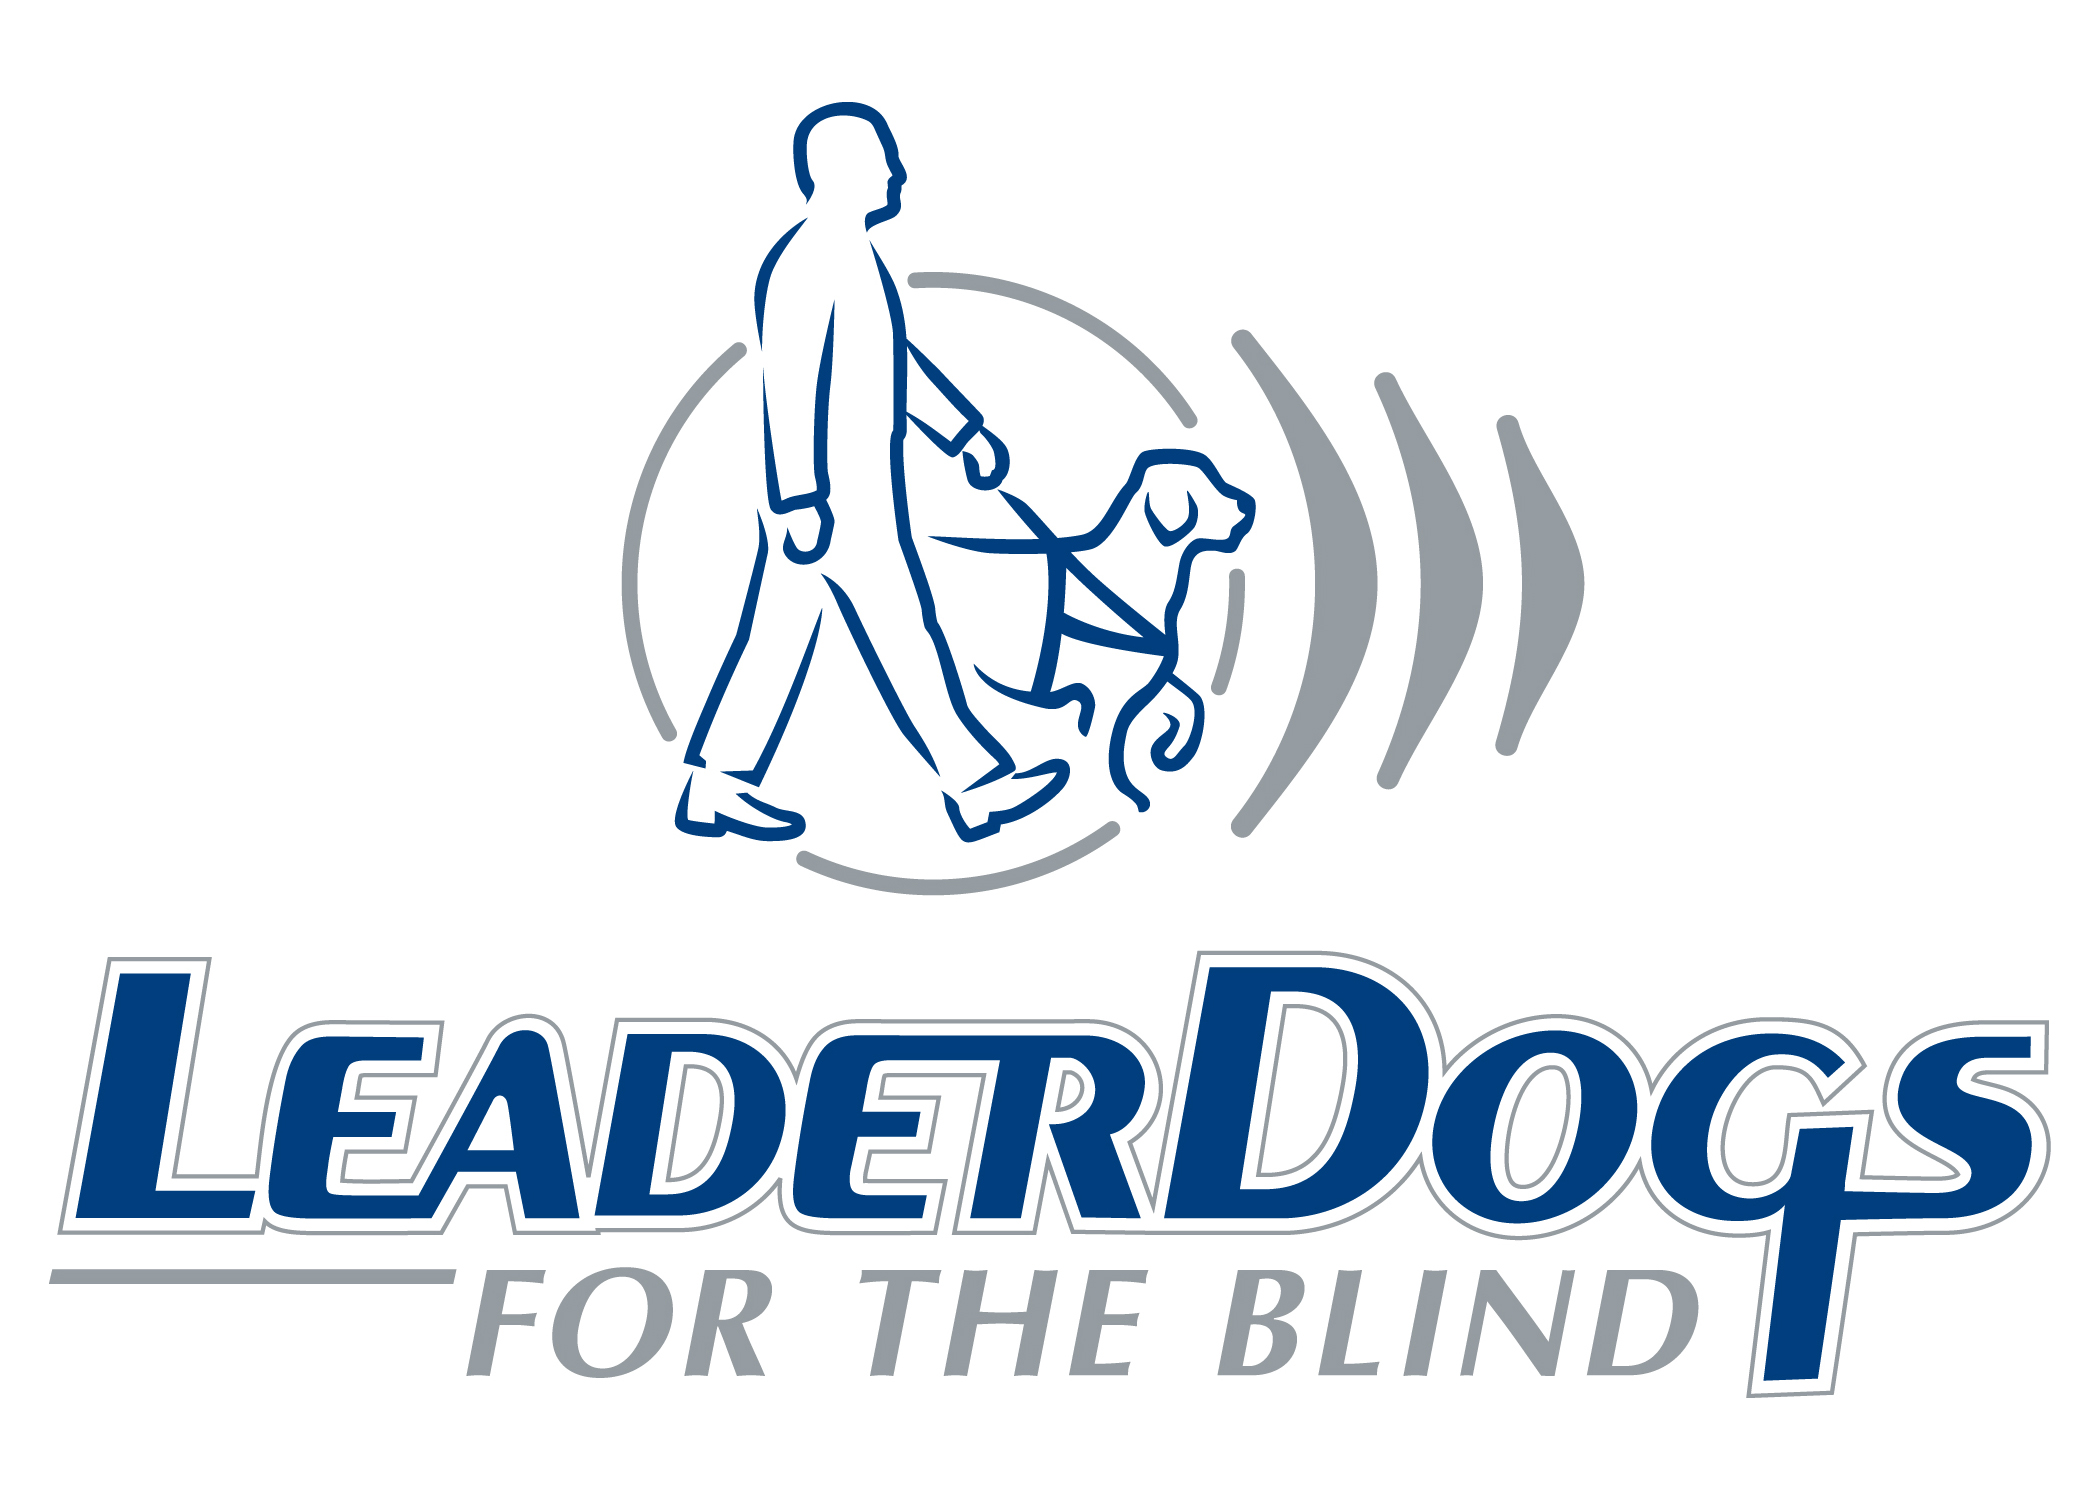 All photos courtesy of Leader Dogs for the Blind